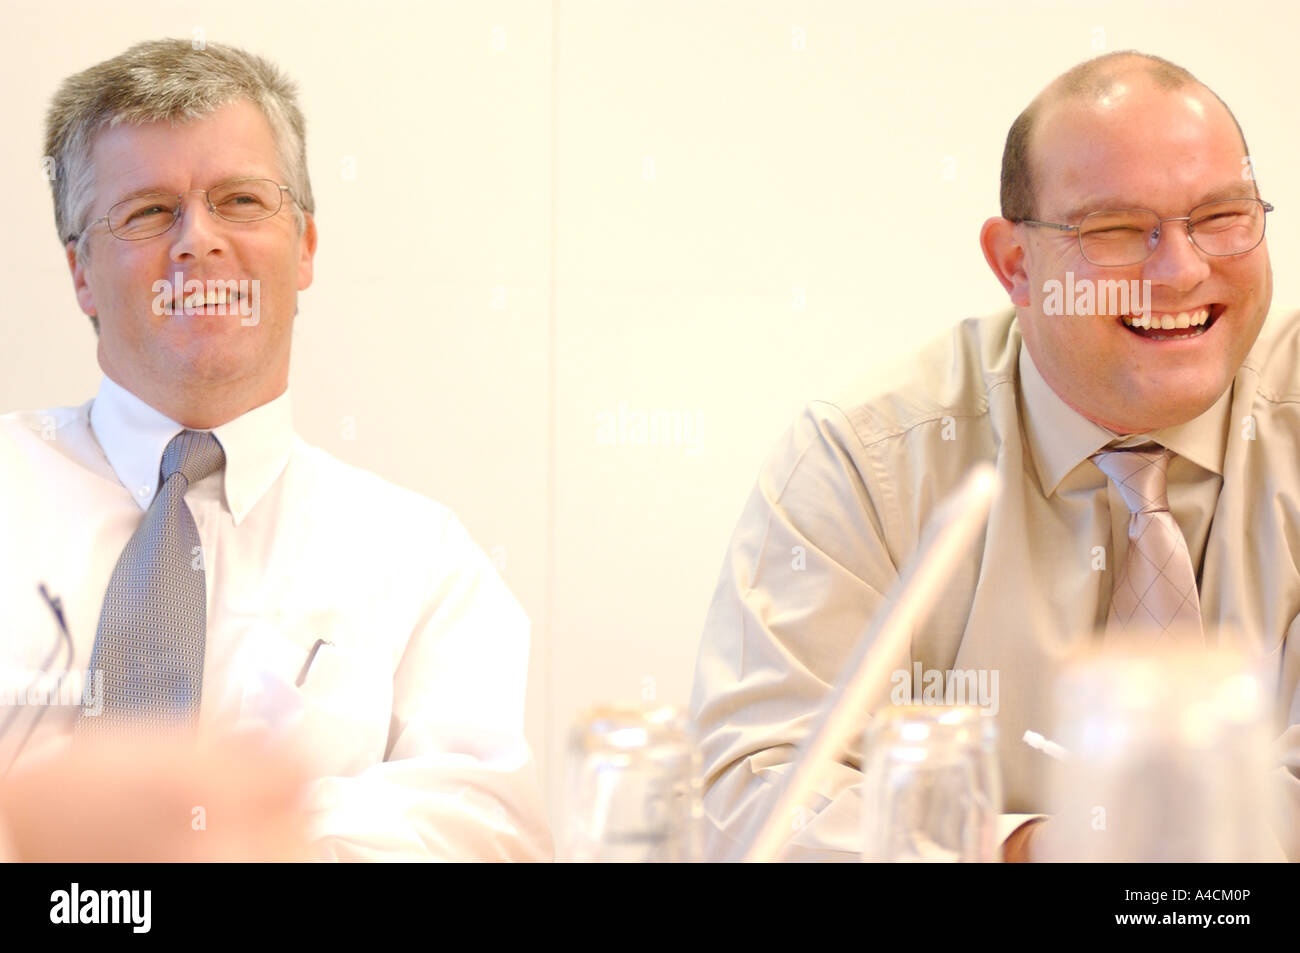 Royalty free photograph of two British businessmen partners in meeting happy about the future UK London - Stock Image